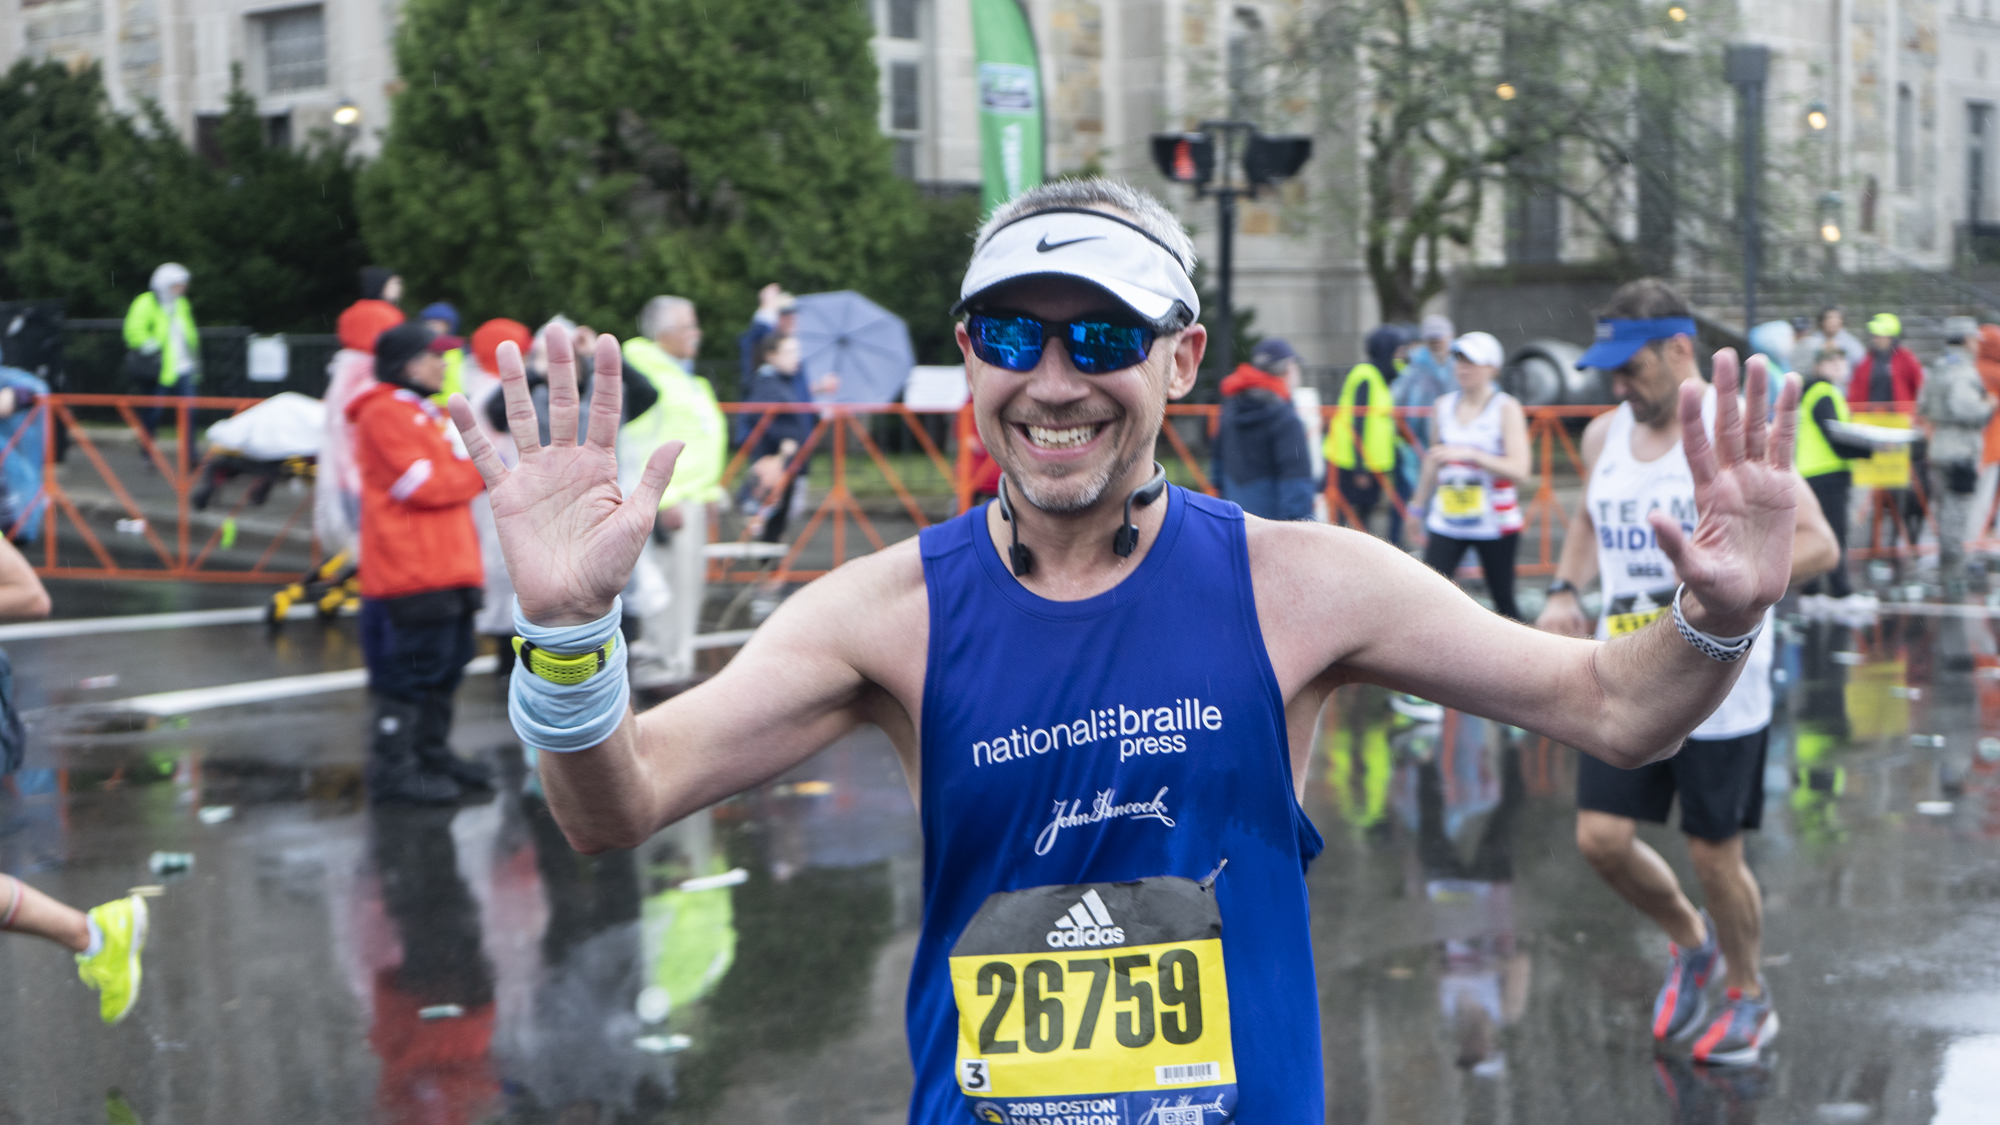 William Flynn smiling for the camera at mile 24 during the 2019 Boston Marathon